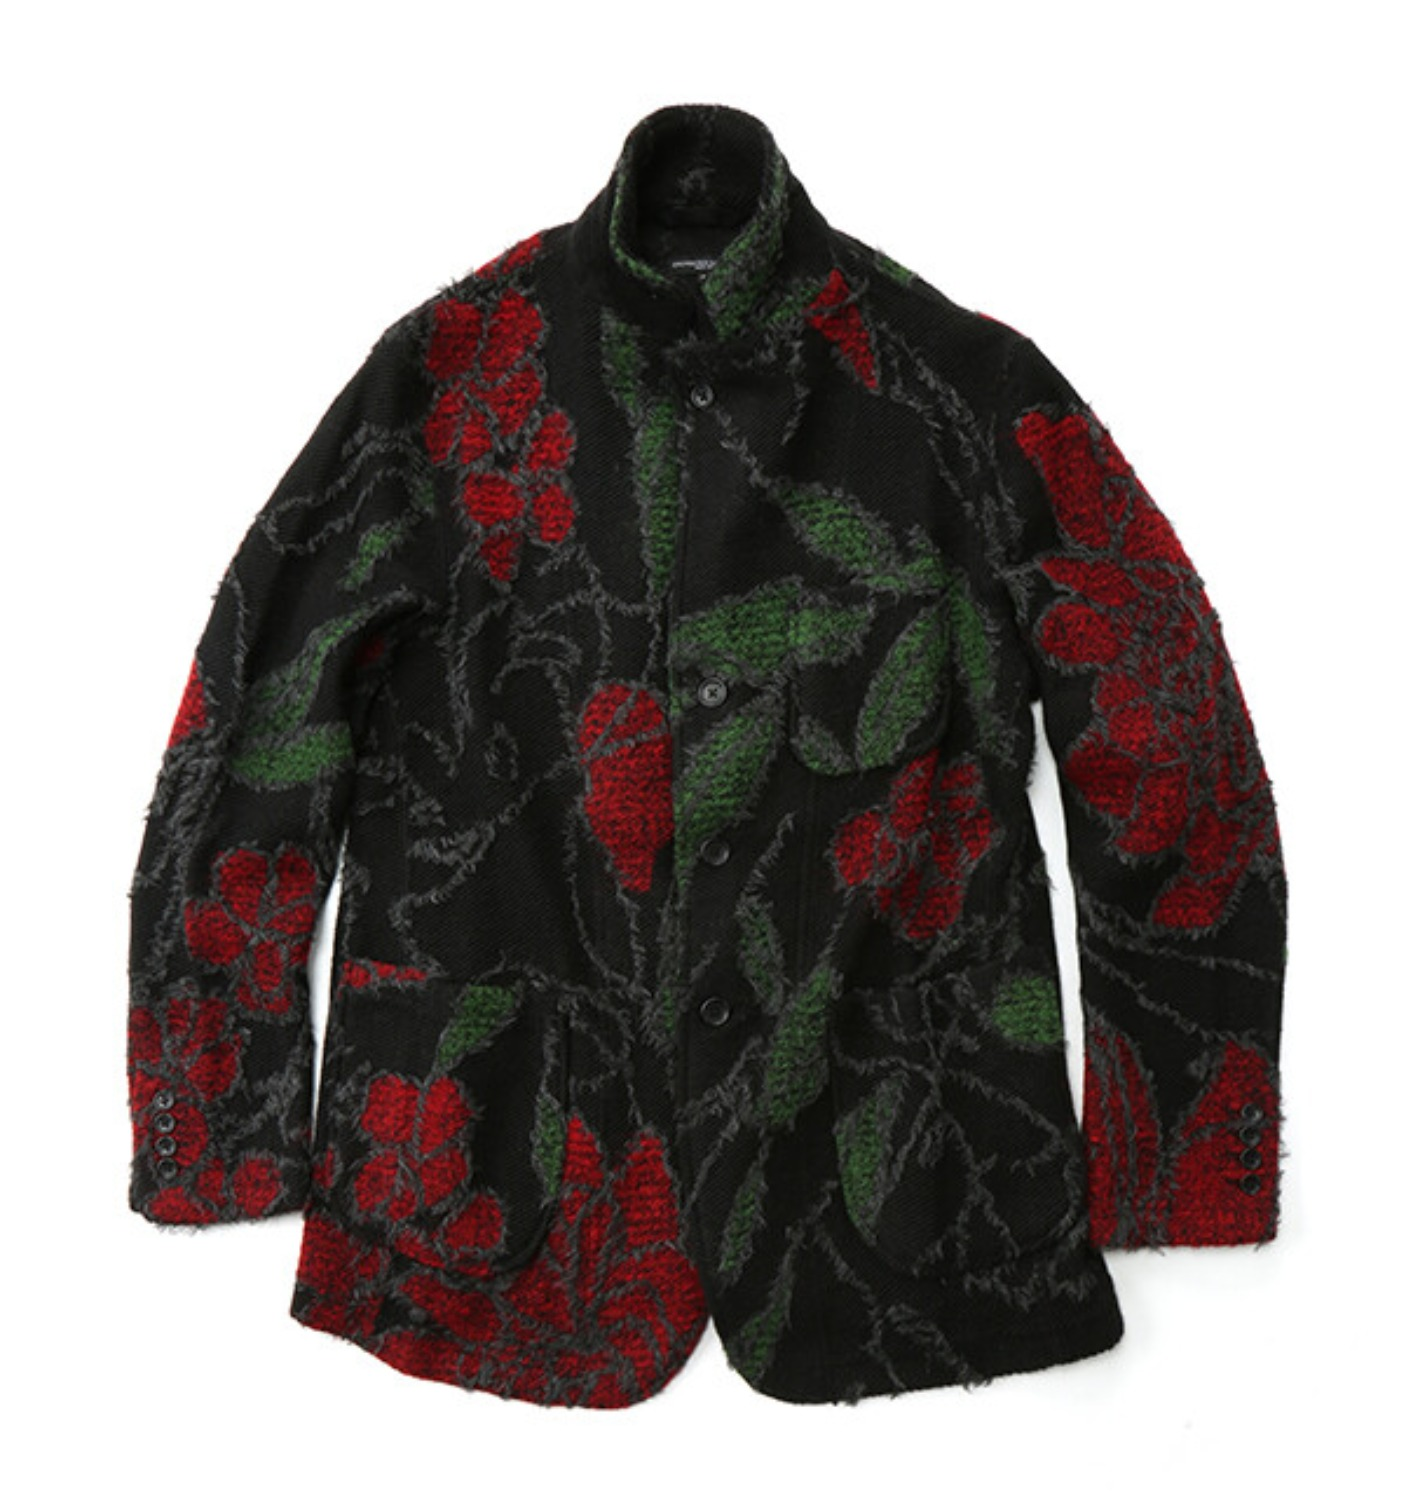 KNIT JACKET BLACK/RED ACRYLIC WOOL FLORAL KNIT JACQUARD